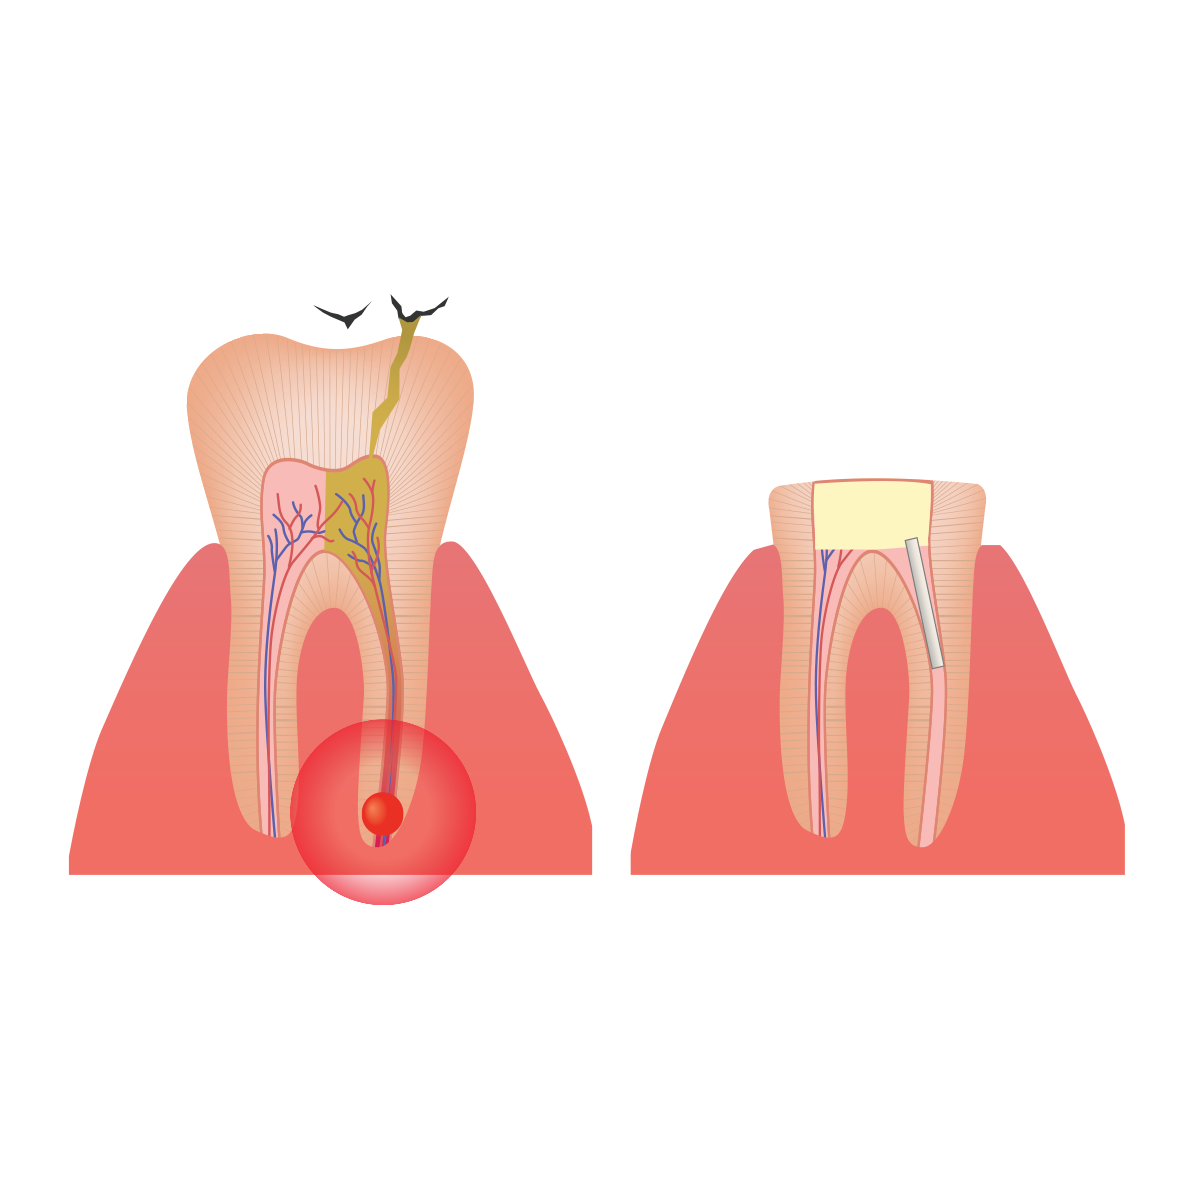 Before and after root canal therapy digital image